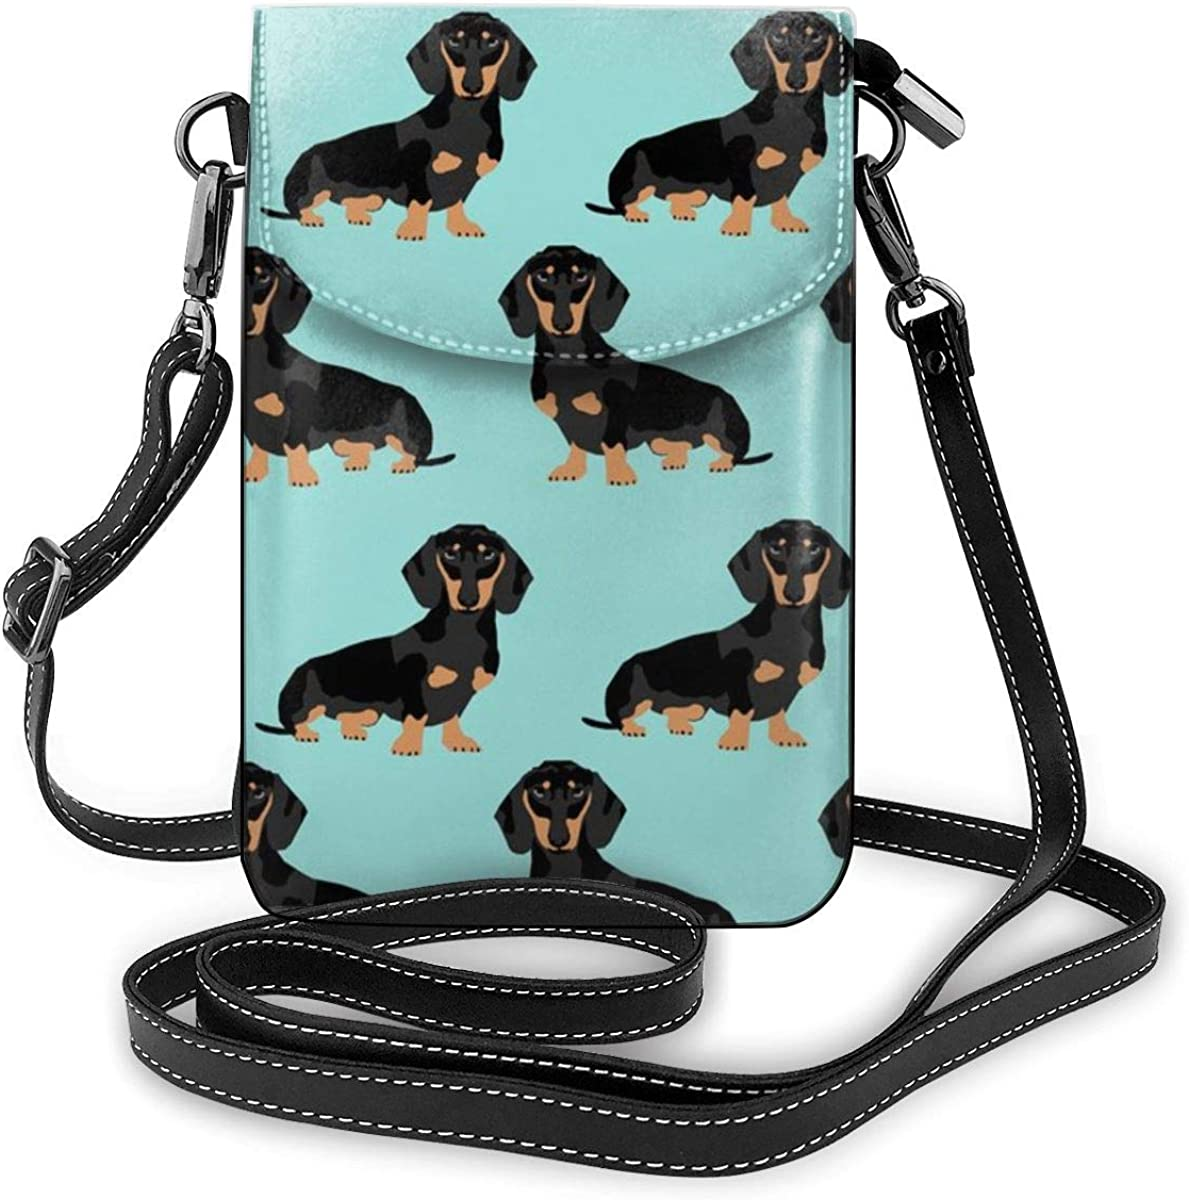 Embroidered dog purse Denim smart phone padded pouch Small cross body bag. coin purse hipster with two zippers choose your Breed